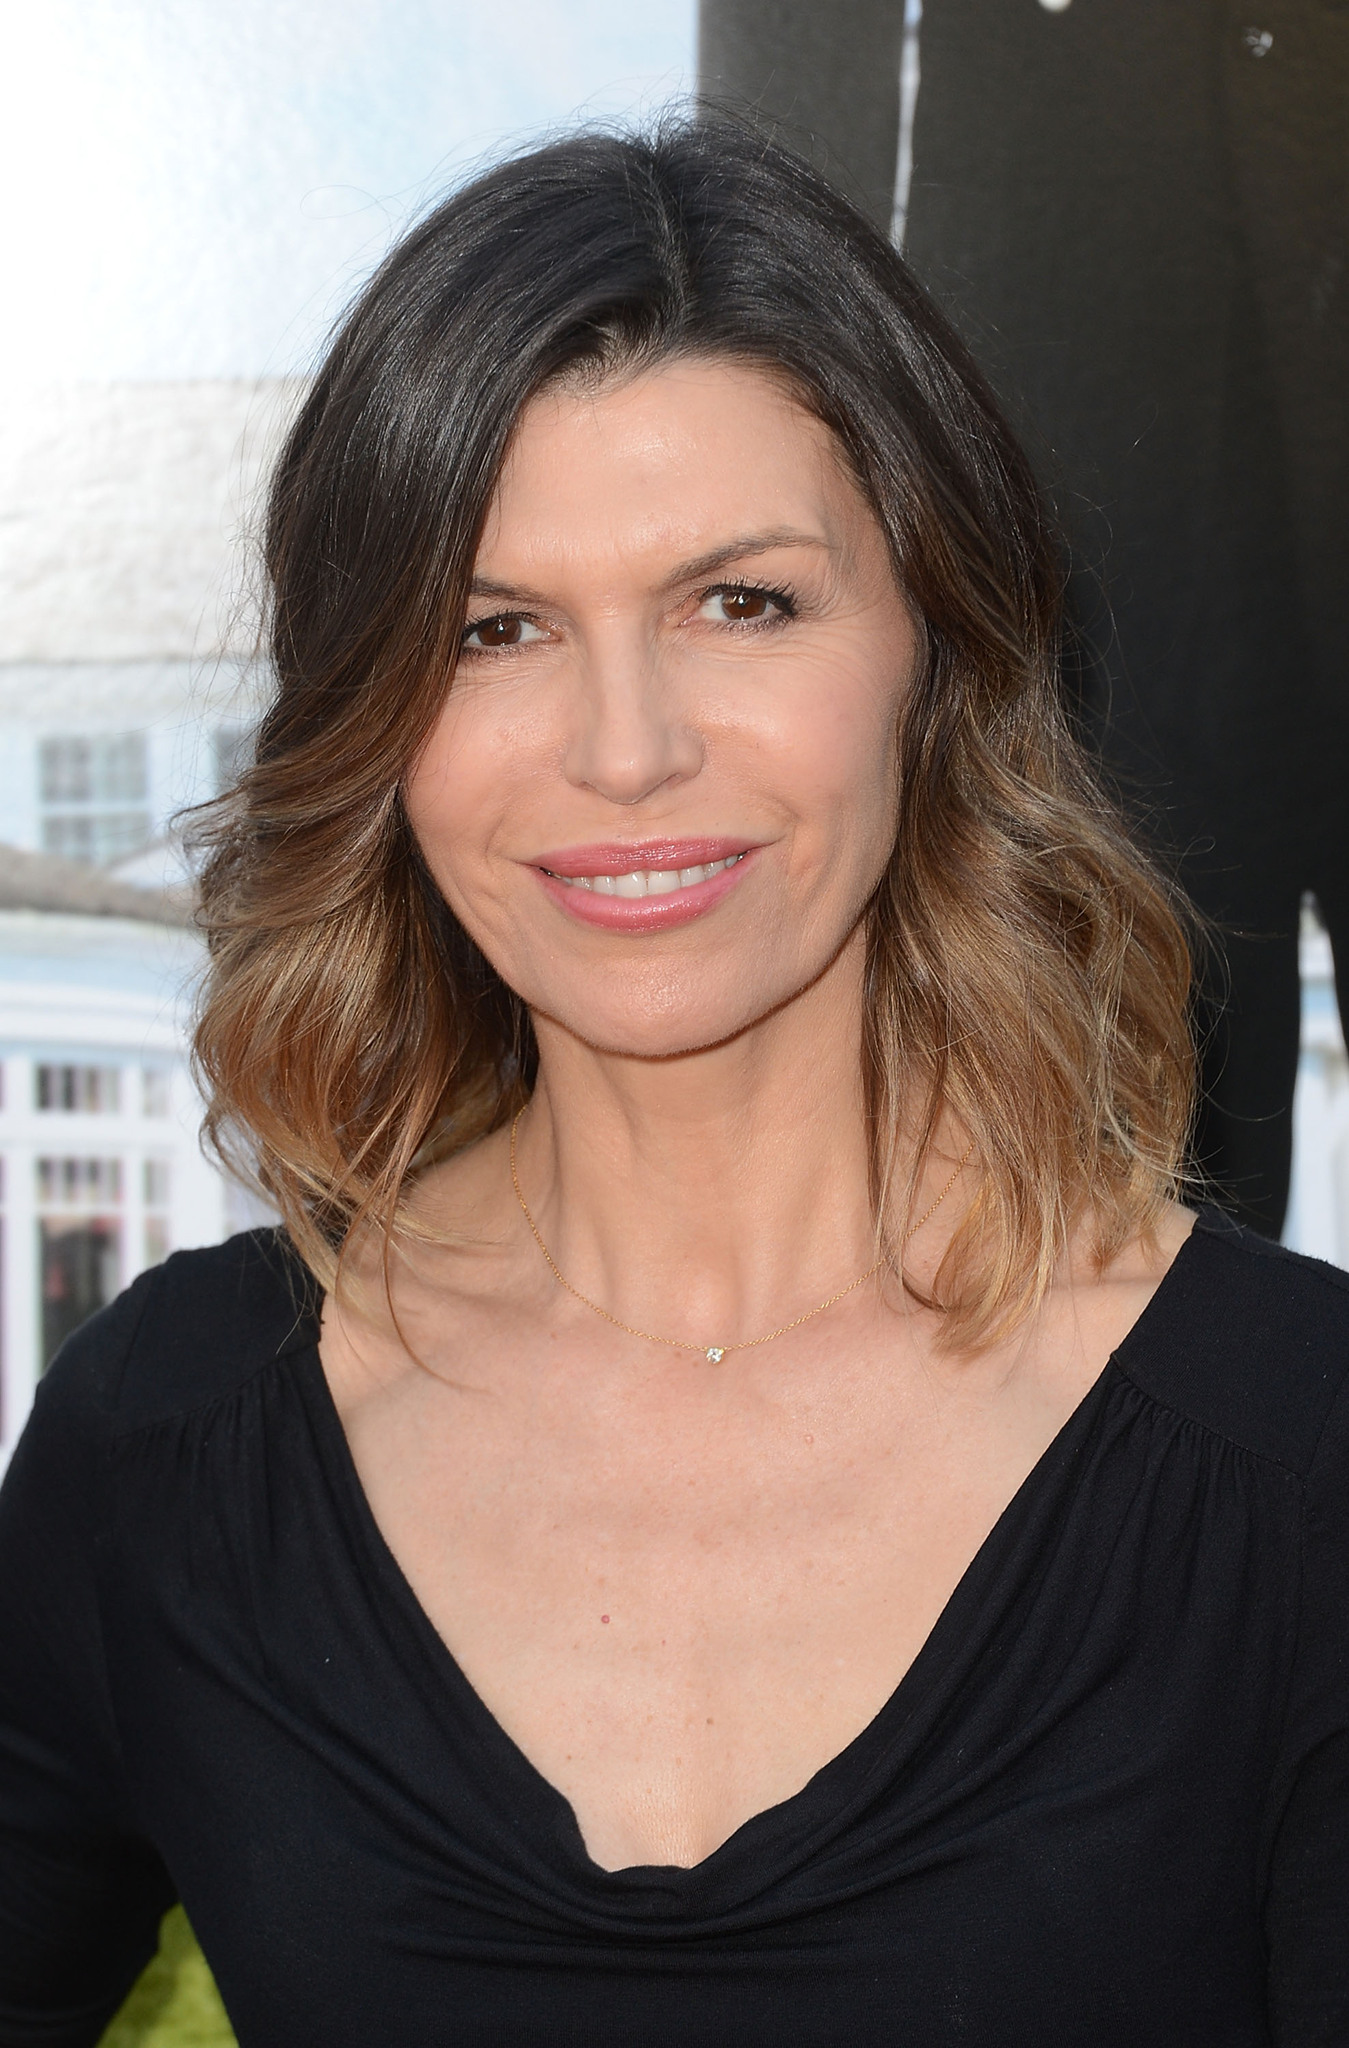 Finola Hughes at an event for That's My Boy (2012)